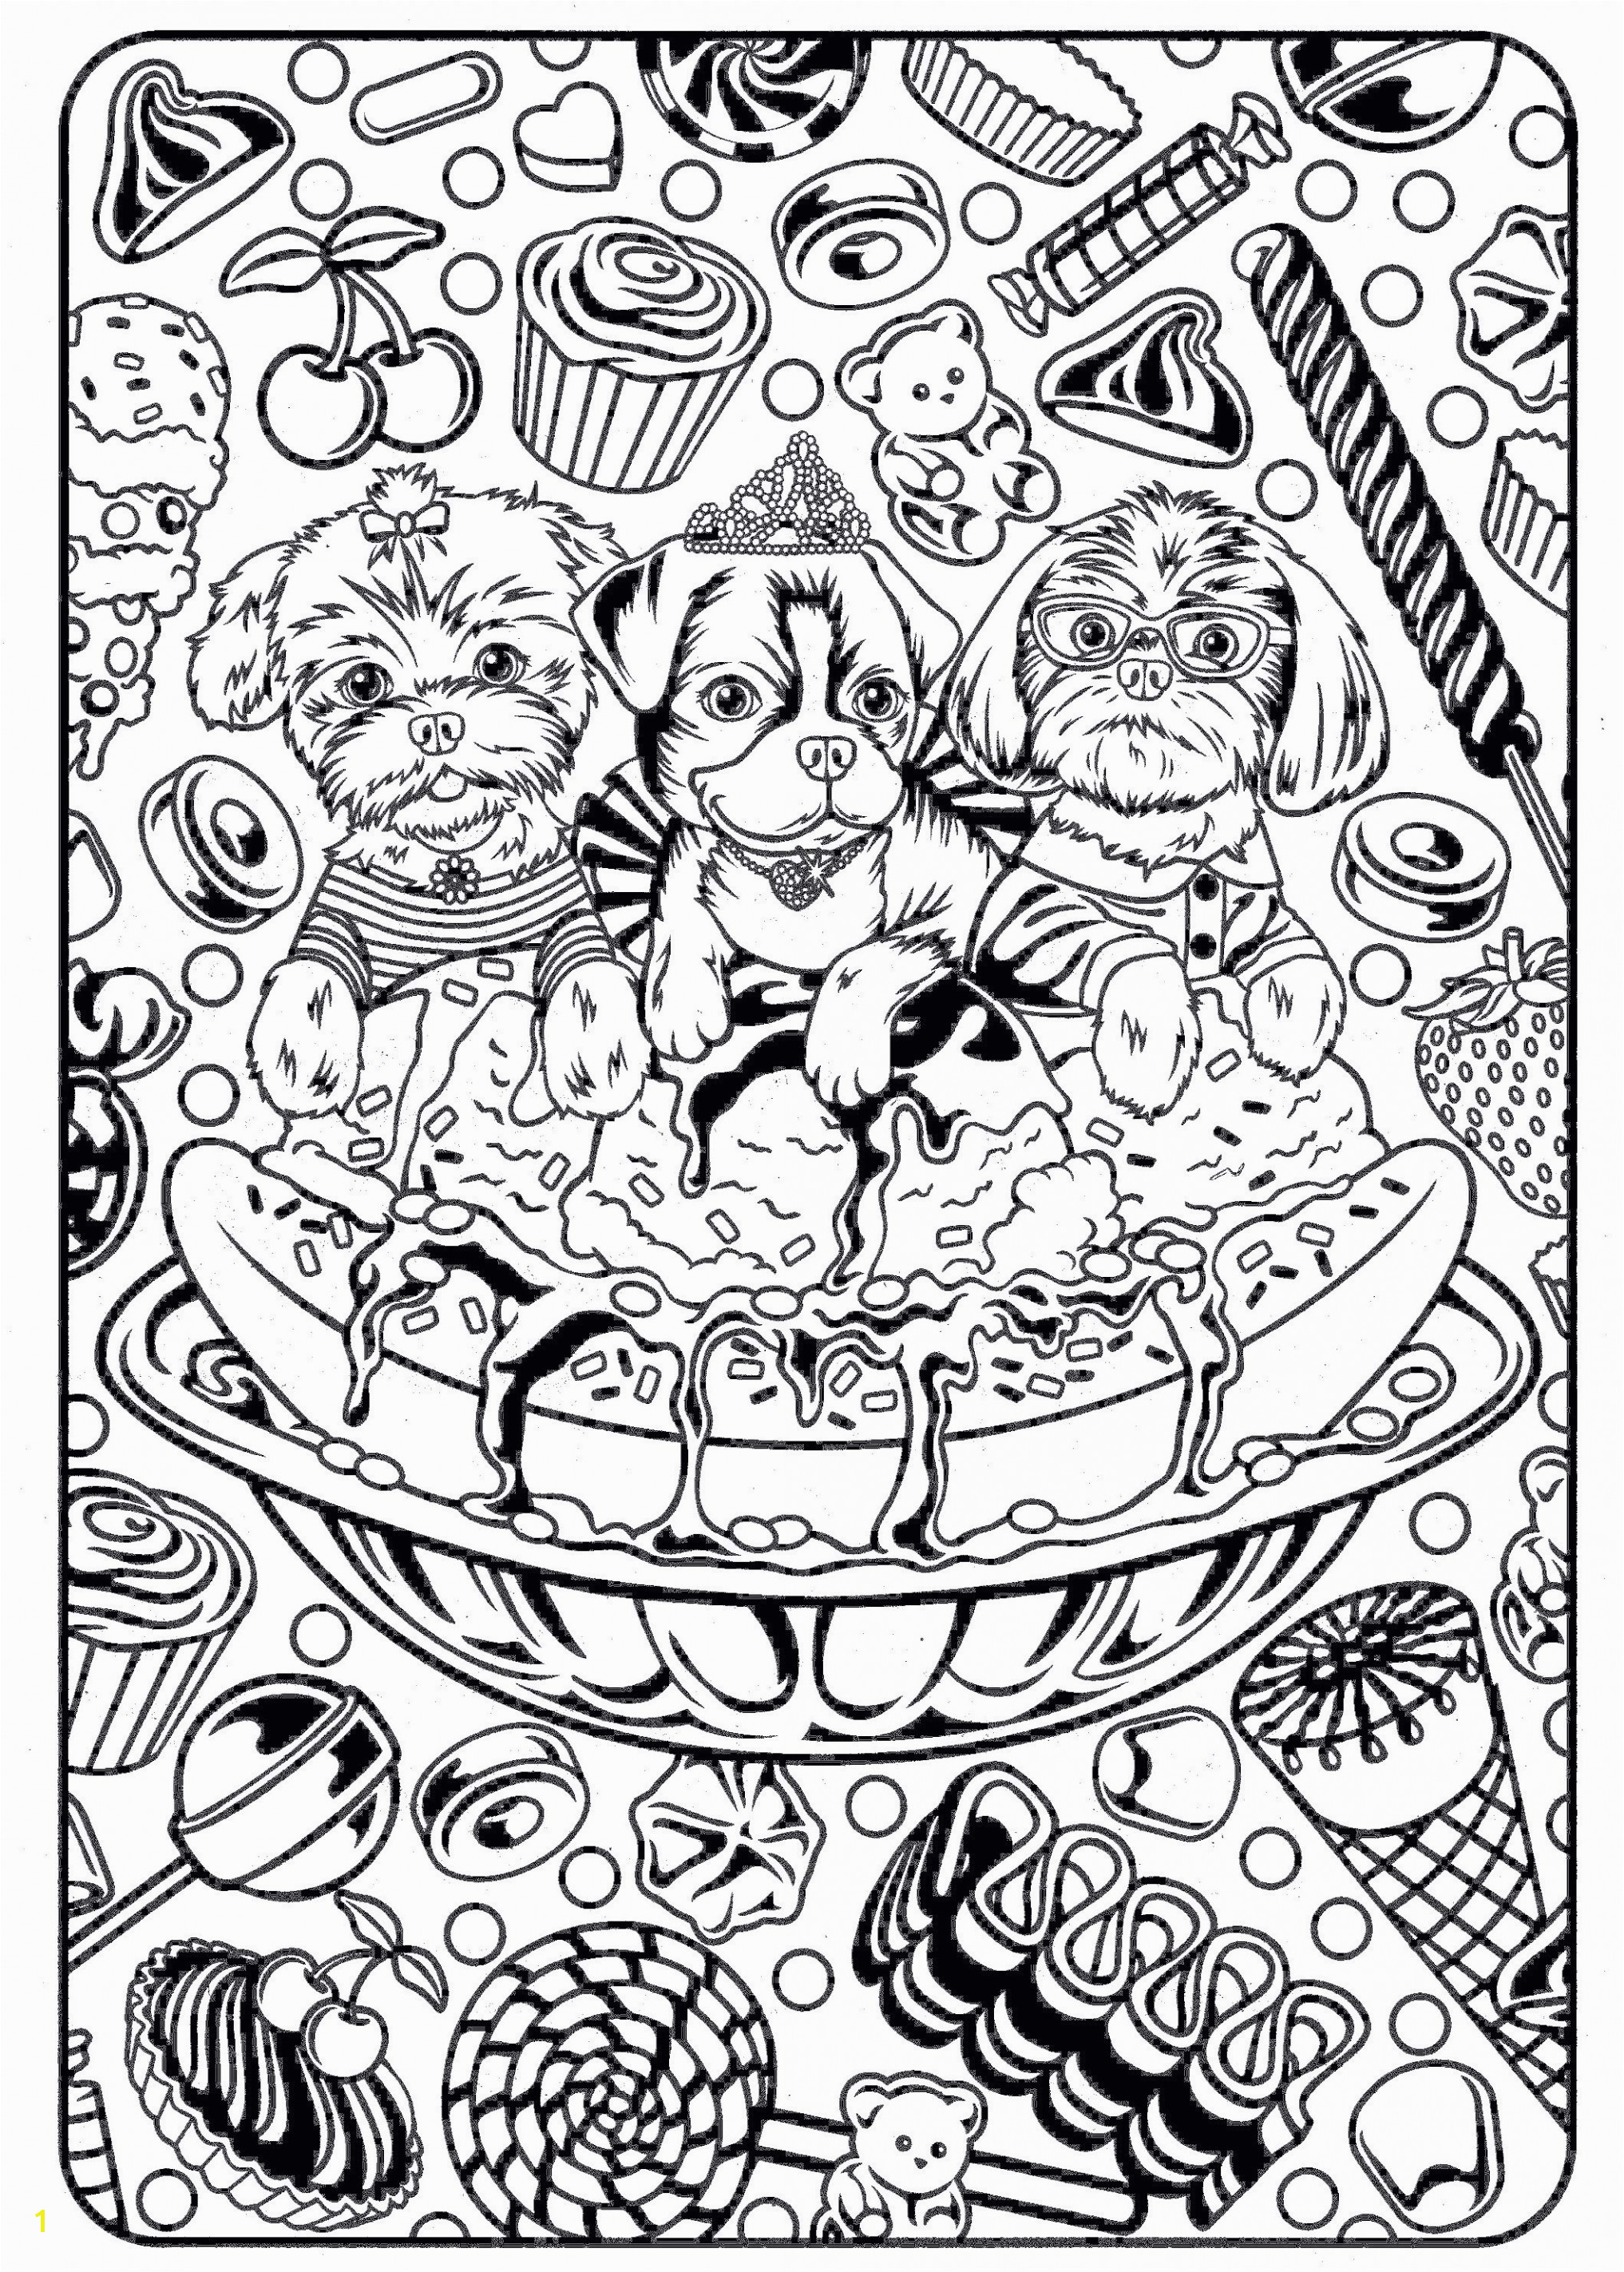 Fall Coloring Pages for Preschoolers Free Ing Pages Kids Color Pages New Fall Coloring Pages 0d Page for